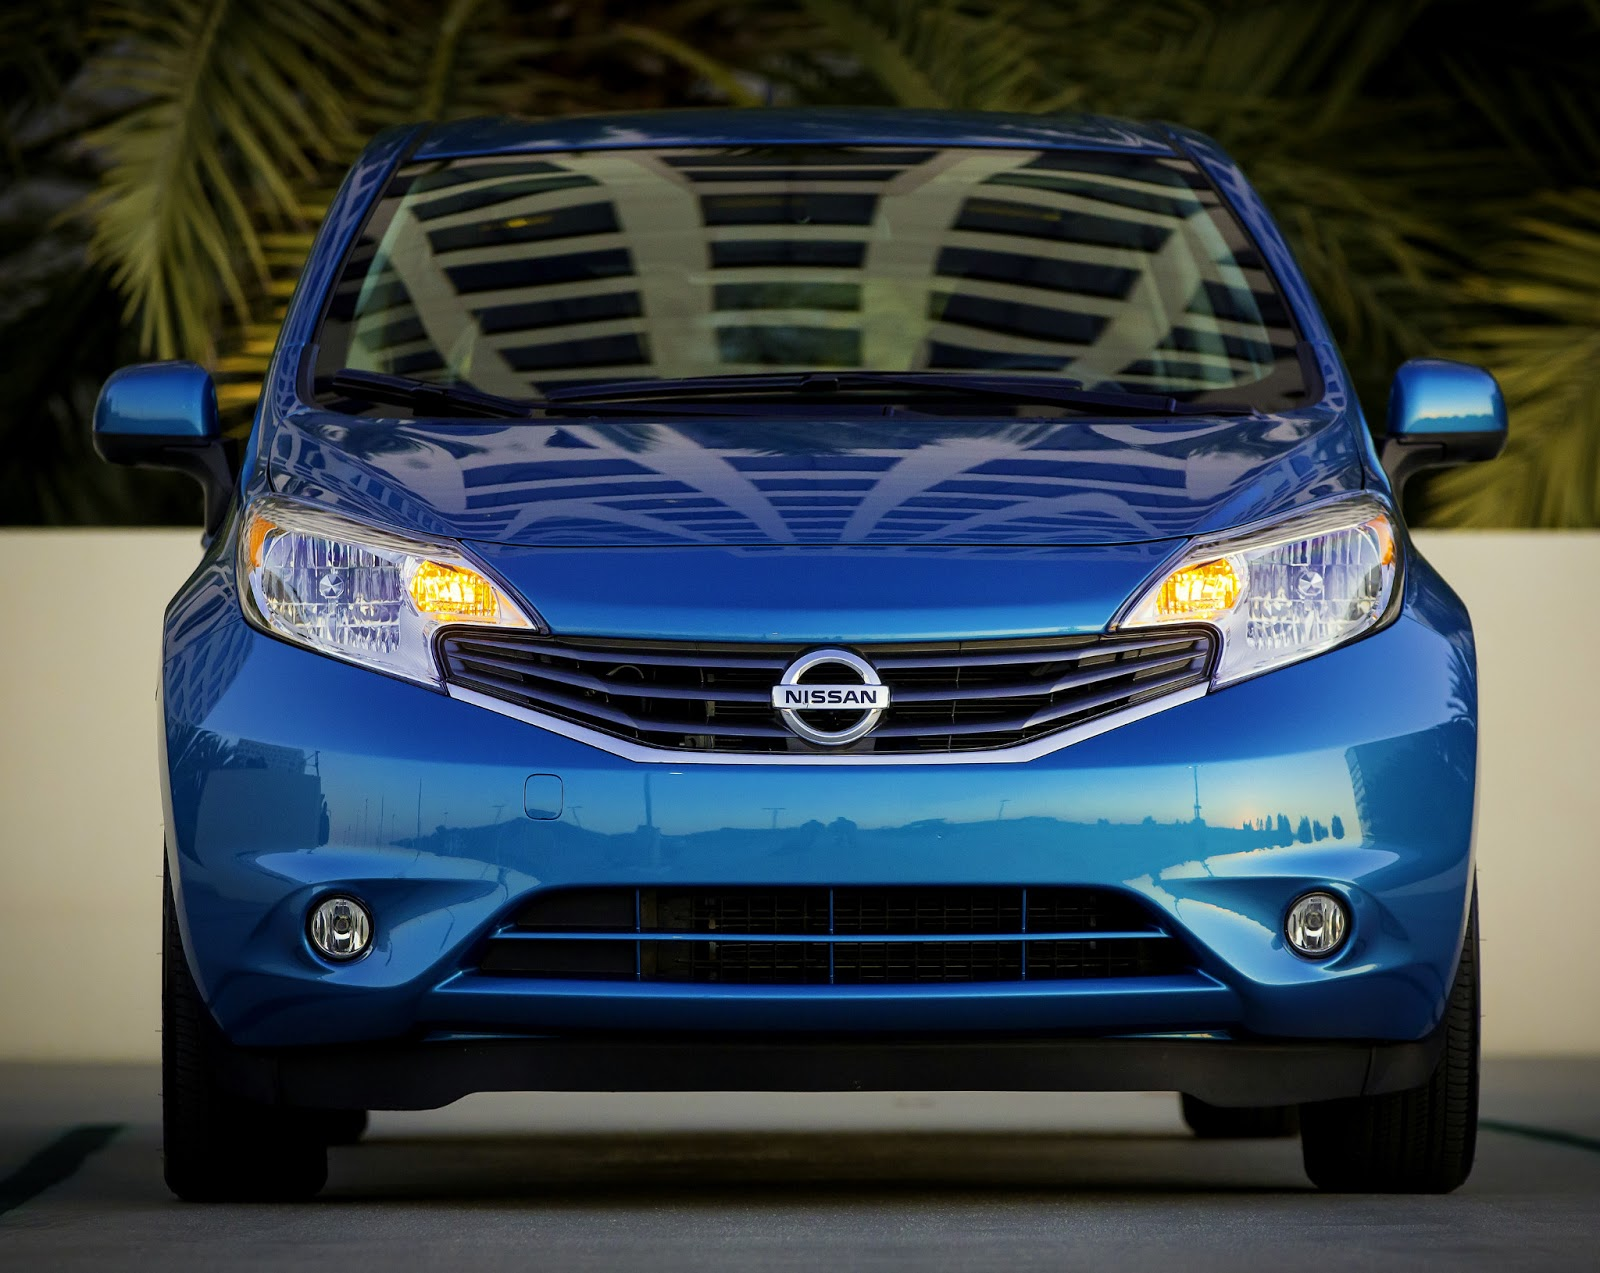 All new 2014 nissan versa note offers energetic styling best level fuel efficiency and smart technology class exclusive around view monitor